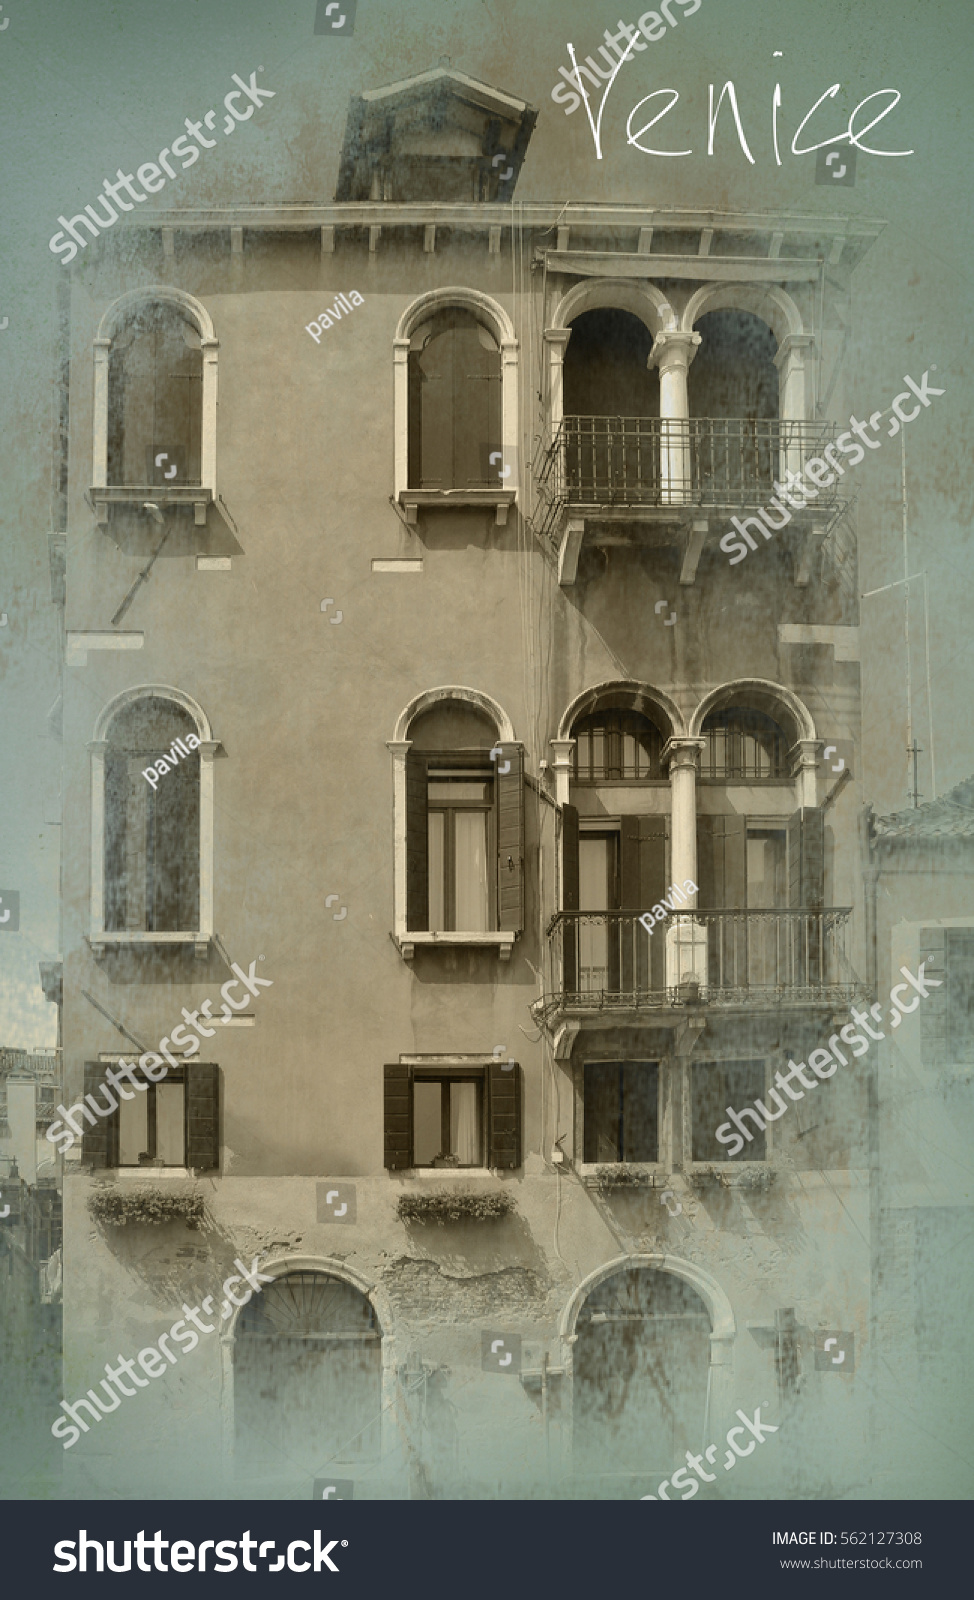 travel postcard view venice italy stock photo 562127308 shutterstock. Black Bedroom Furniture Sets. Home Design Ideas